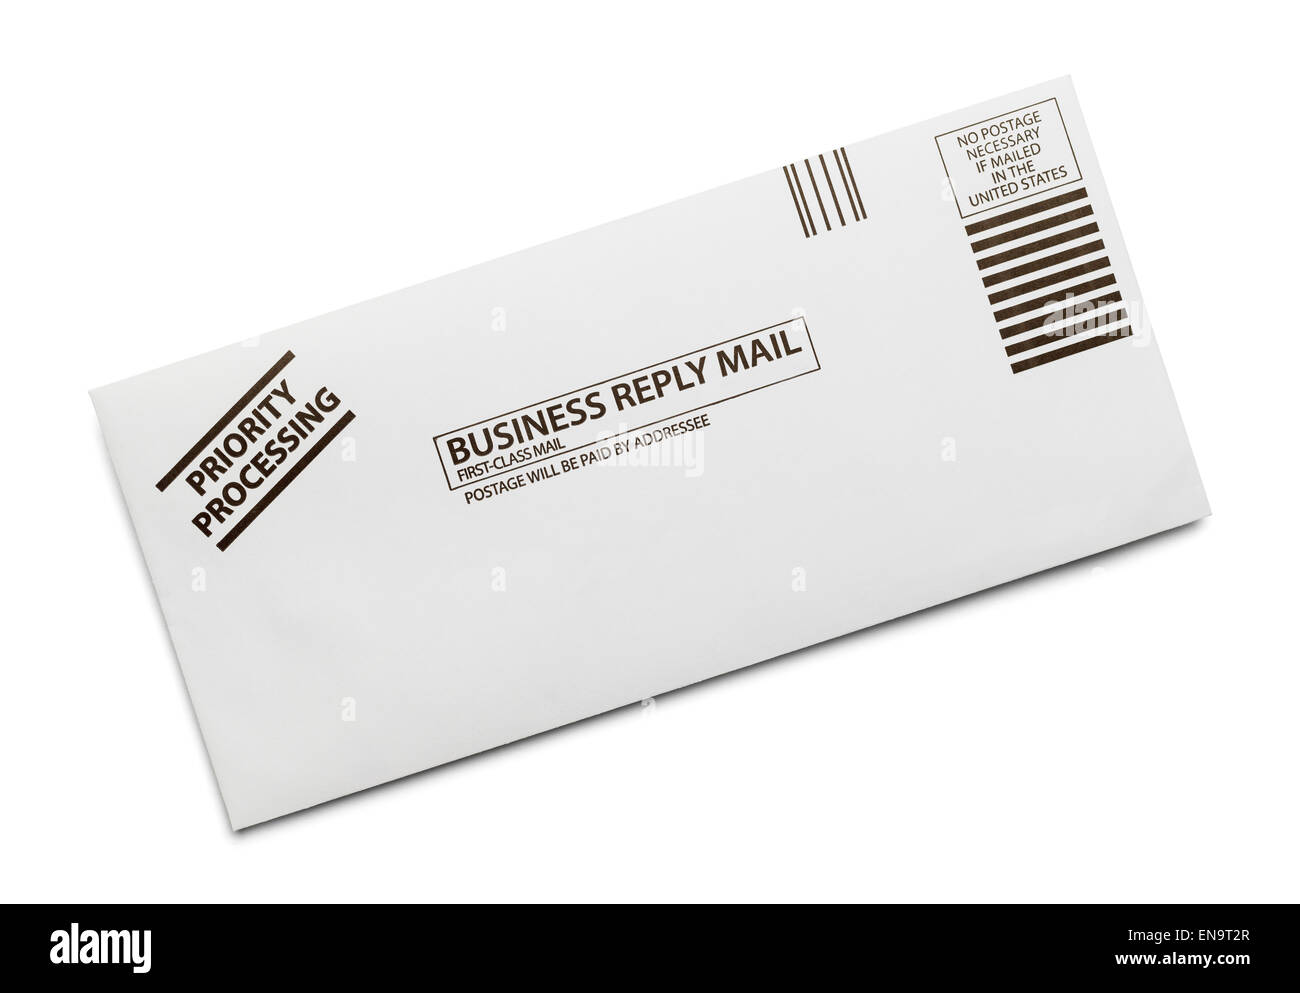 Business Reply Mail Envelope Isolated on White Background. - Stock Image